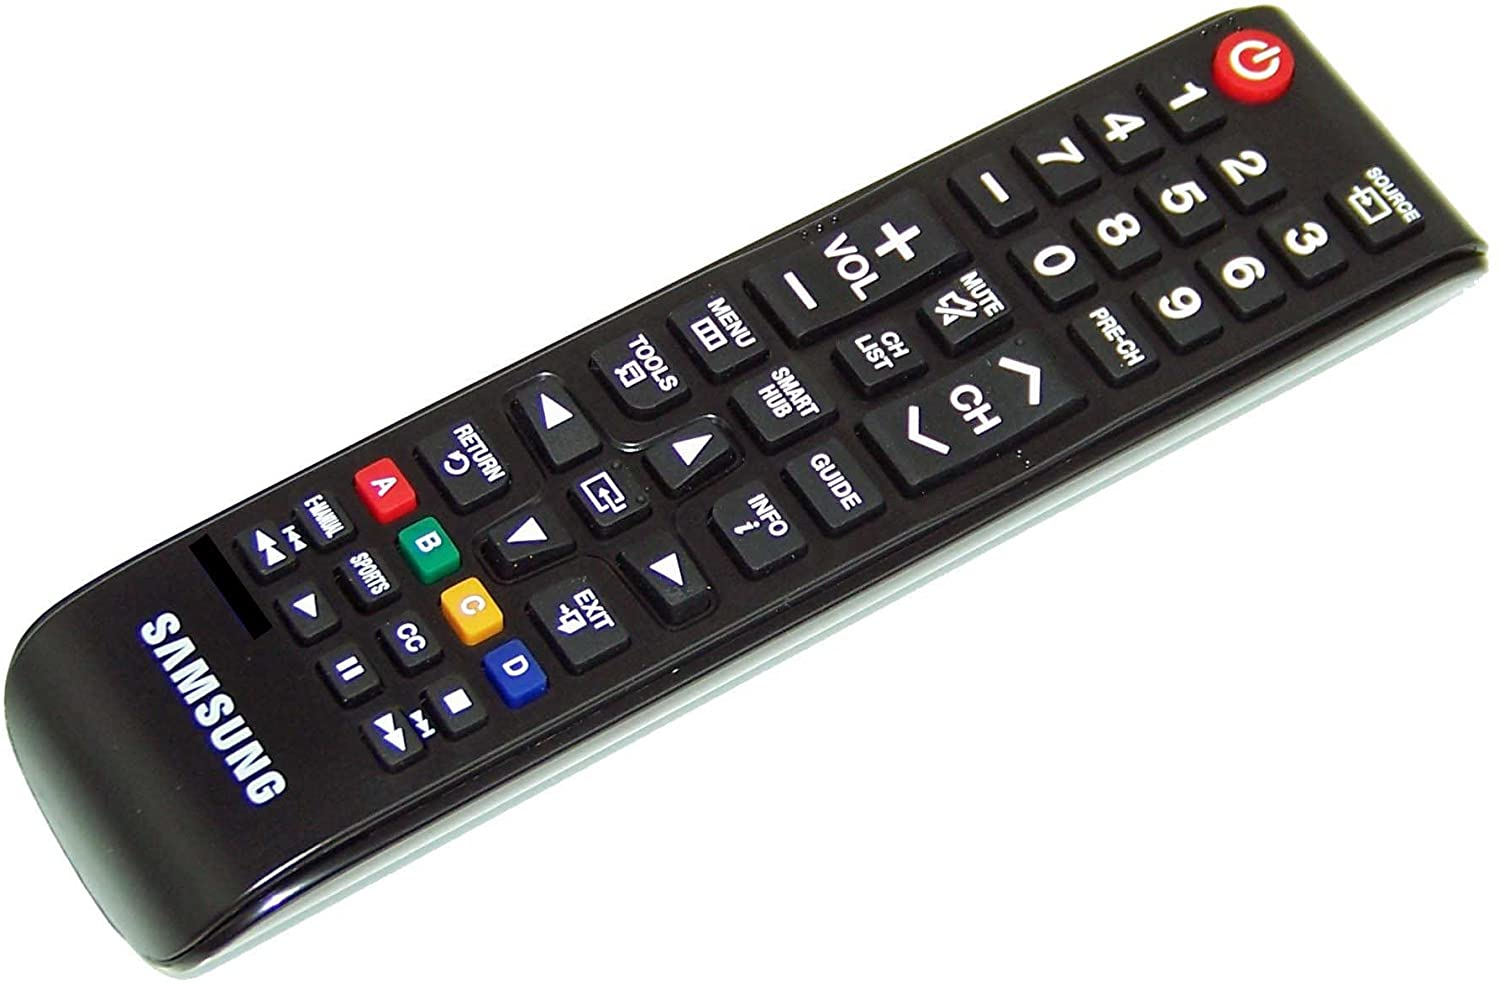 HDTV Smart Samsung BN59-01199F Remote Controller outlet Control For Popularity UN6